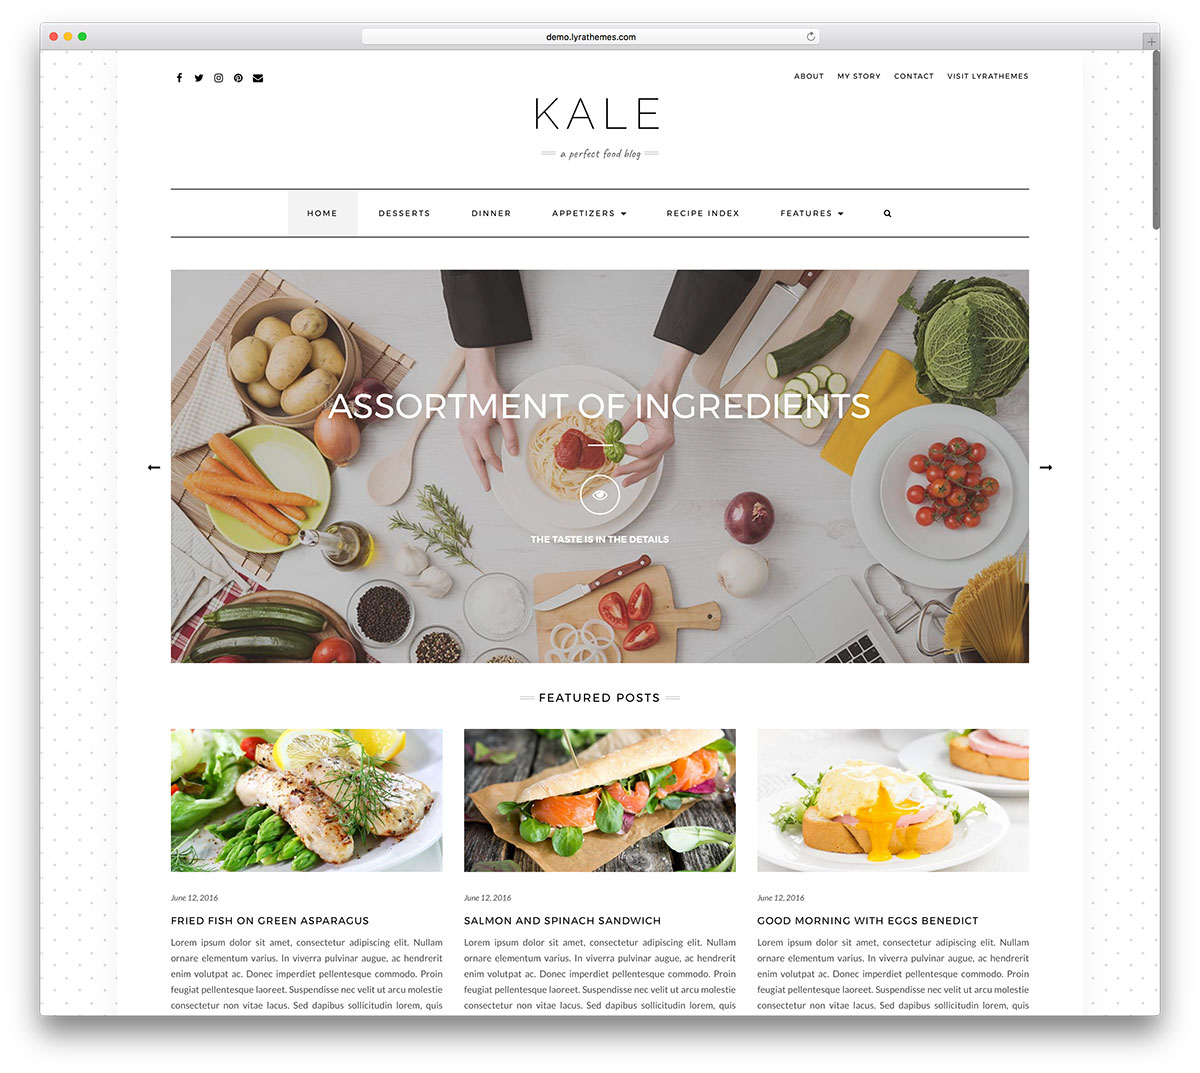 35 awesome food wordpress themes to share recipes 2018 colorlib kale is a clean and responsive wordpress food and personal blog website theme this theme is a pliable toolbox for creating expressive modern blogs forumfinder Image collections